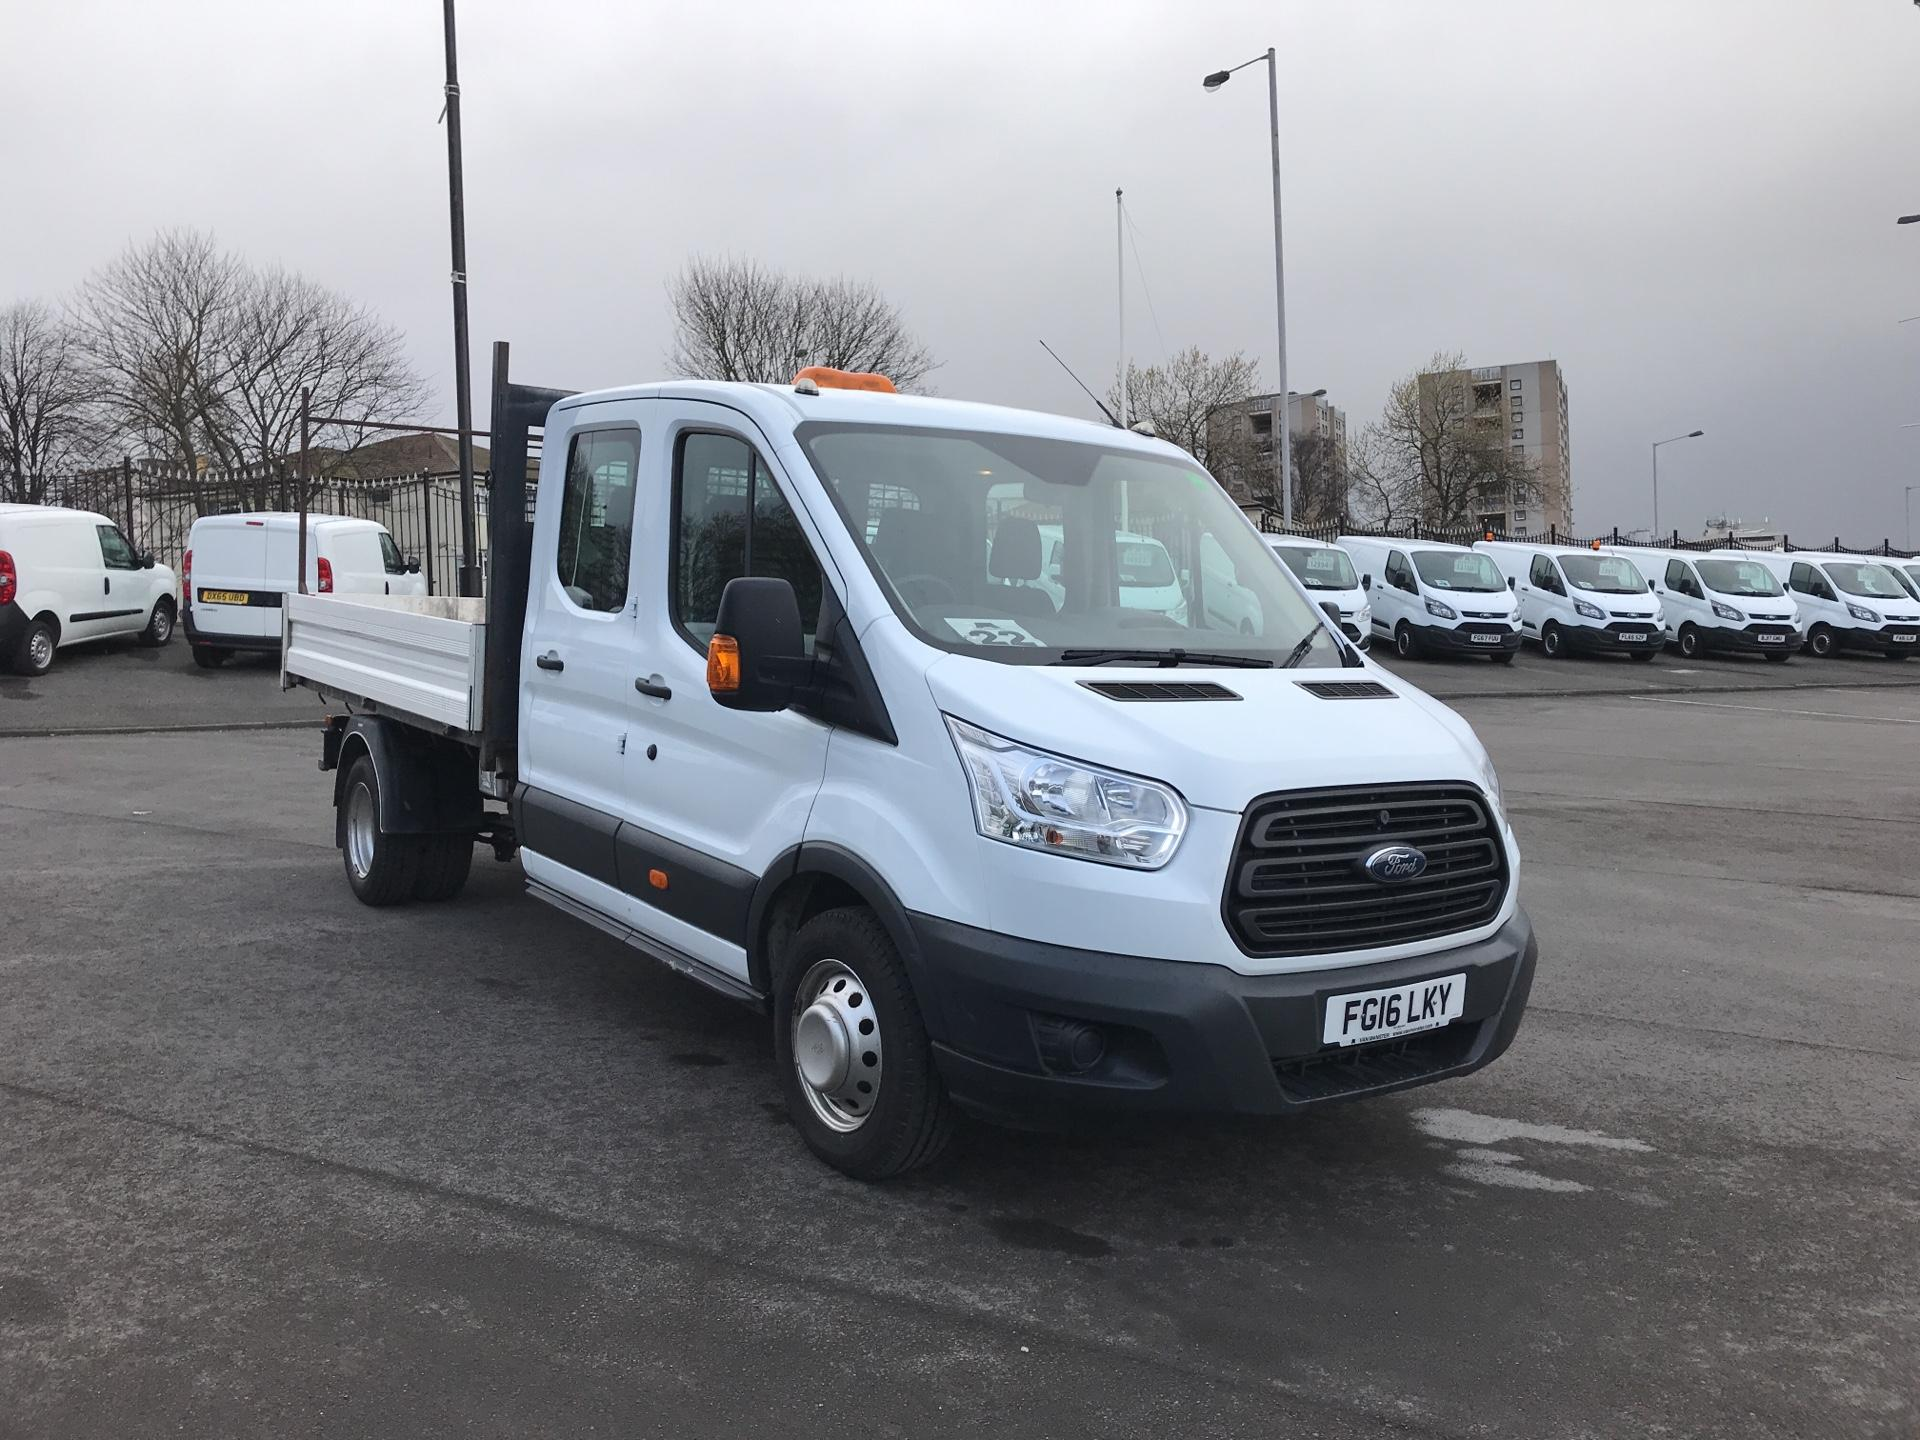 2016 Ford Transit 2.2 TDCI LWB DOUBLE CAB TIPPER EURO 5  (FG16LKY) Image 1